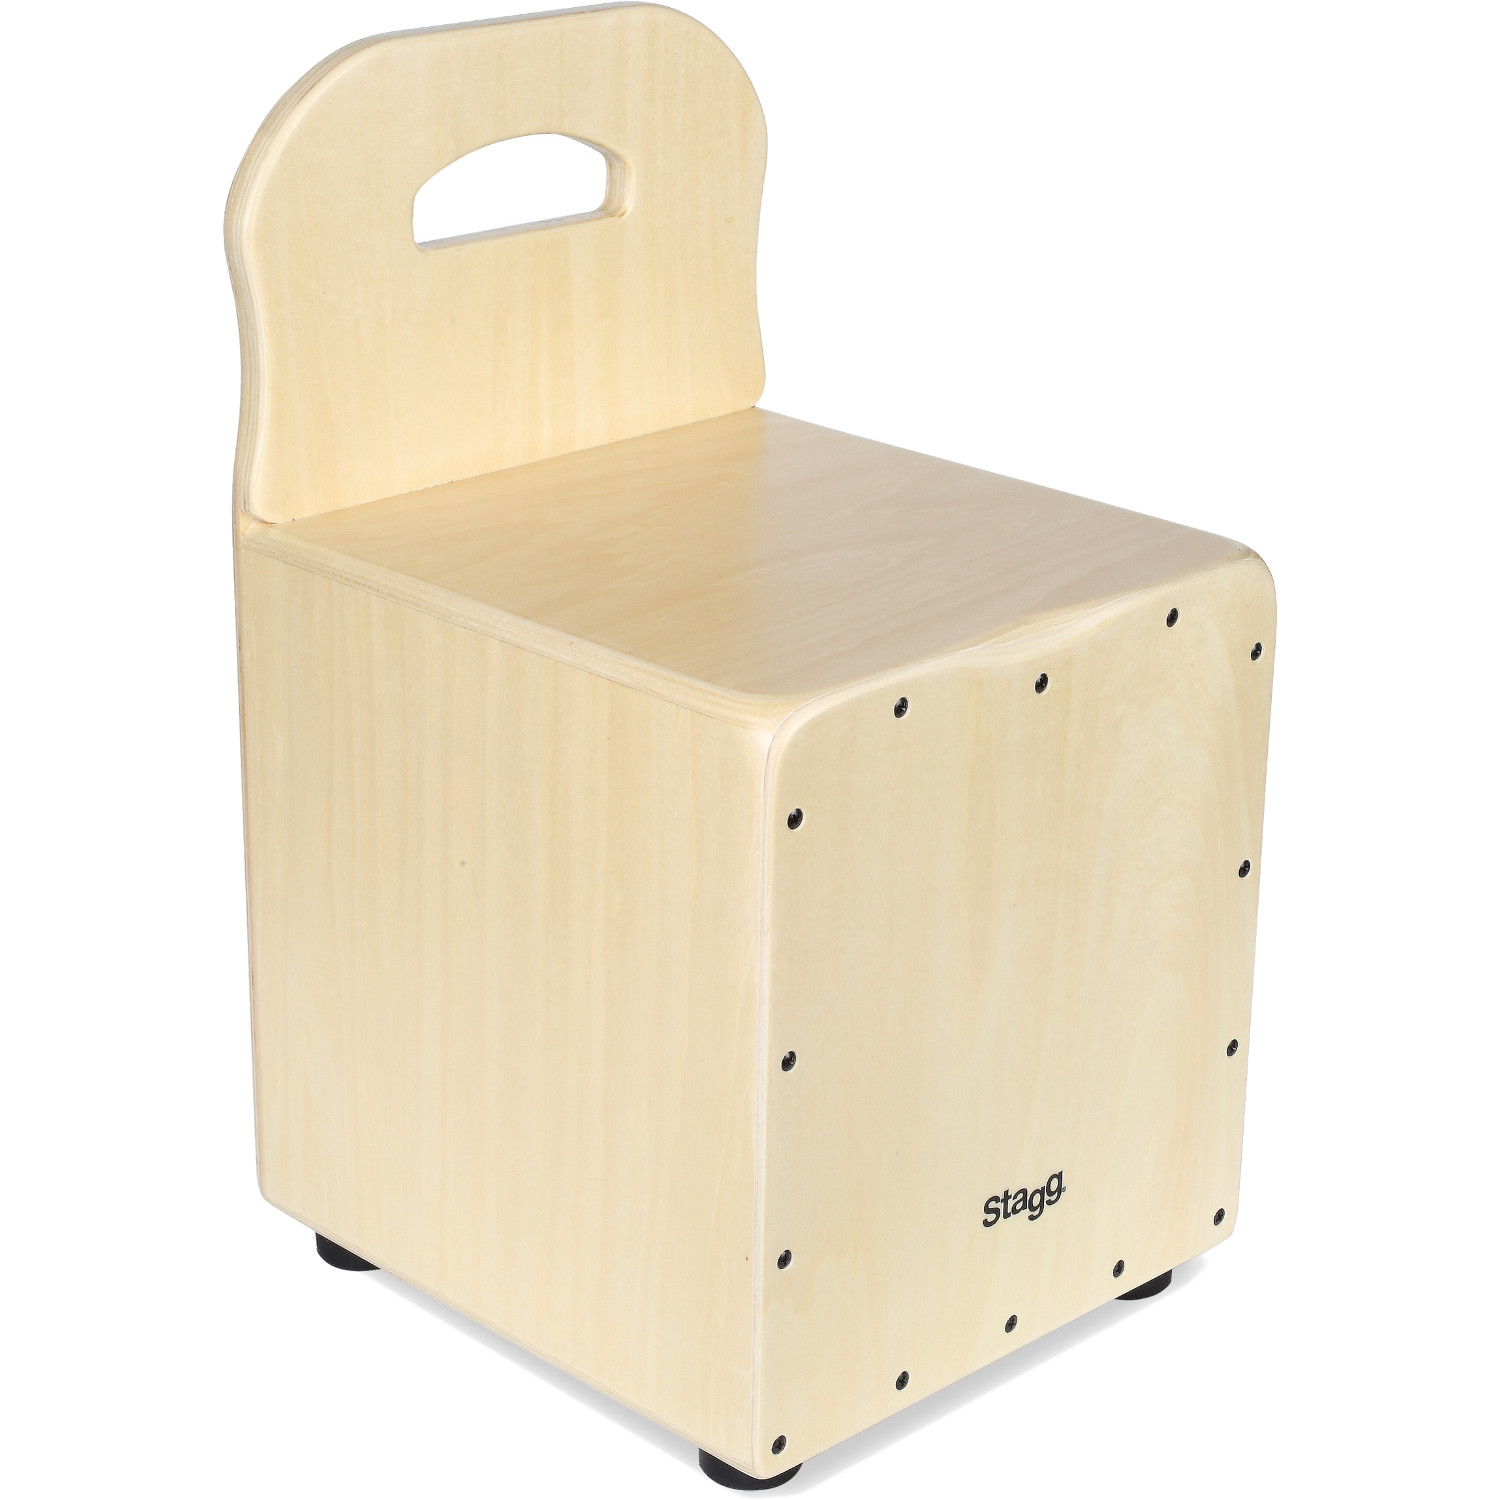 Stagg CAJ KID N children's cajon with back support